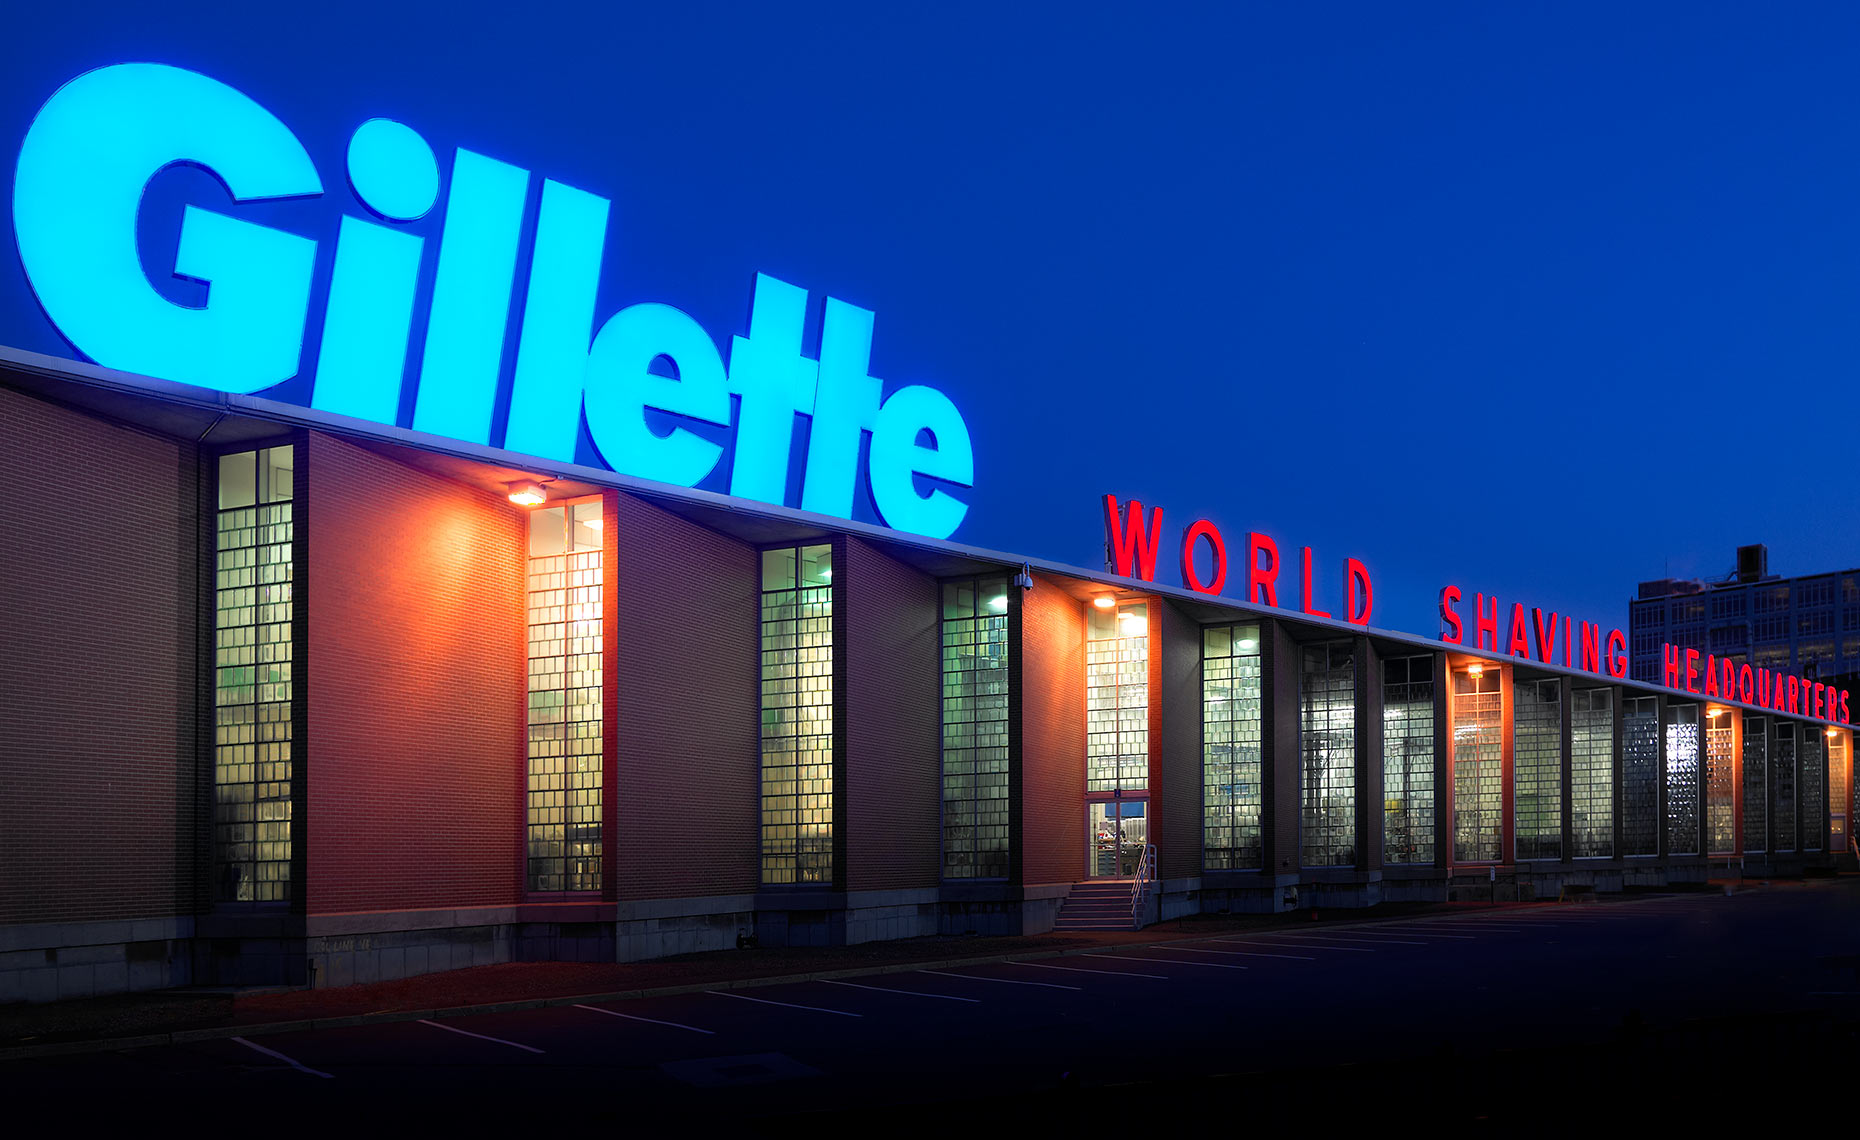 Architectural Exterior at Night of Gillette-sign-final-B